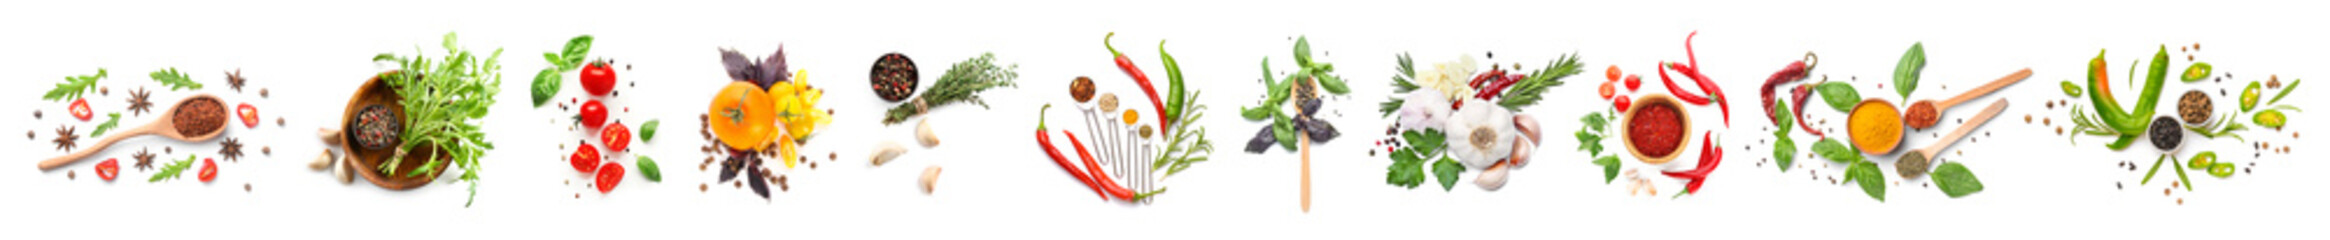 Autocollant pour porte Légumes frais Different fresh spices, herbs and vegetables on white background